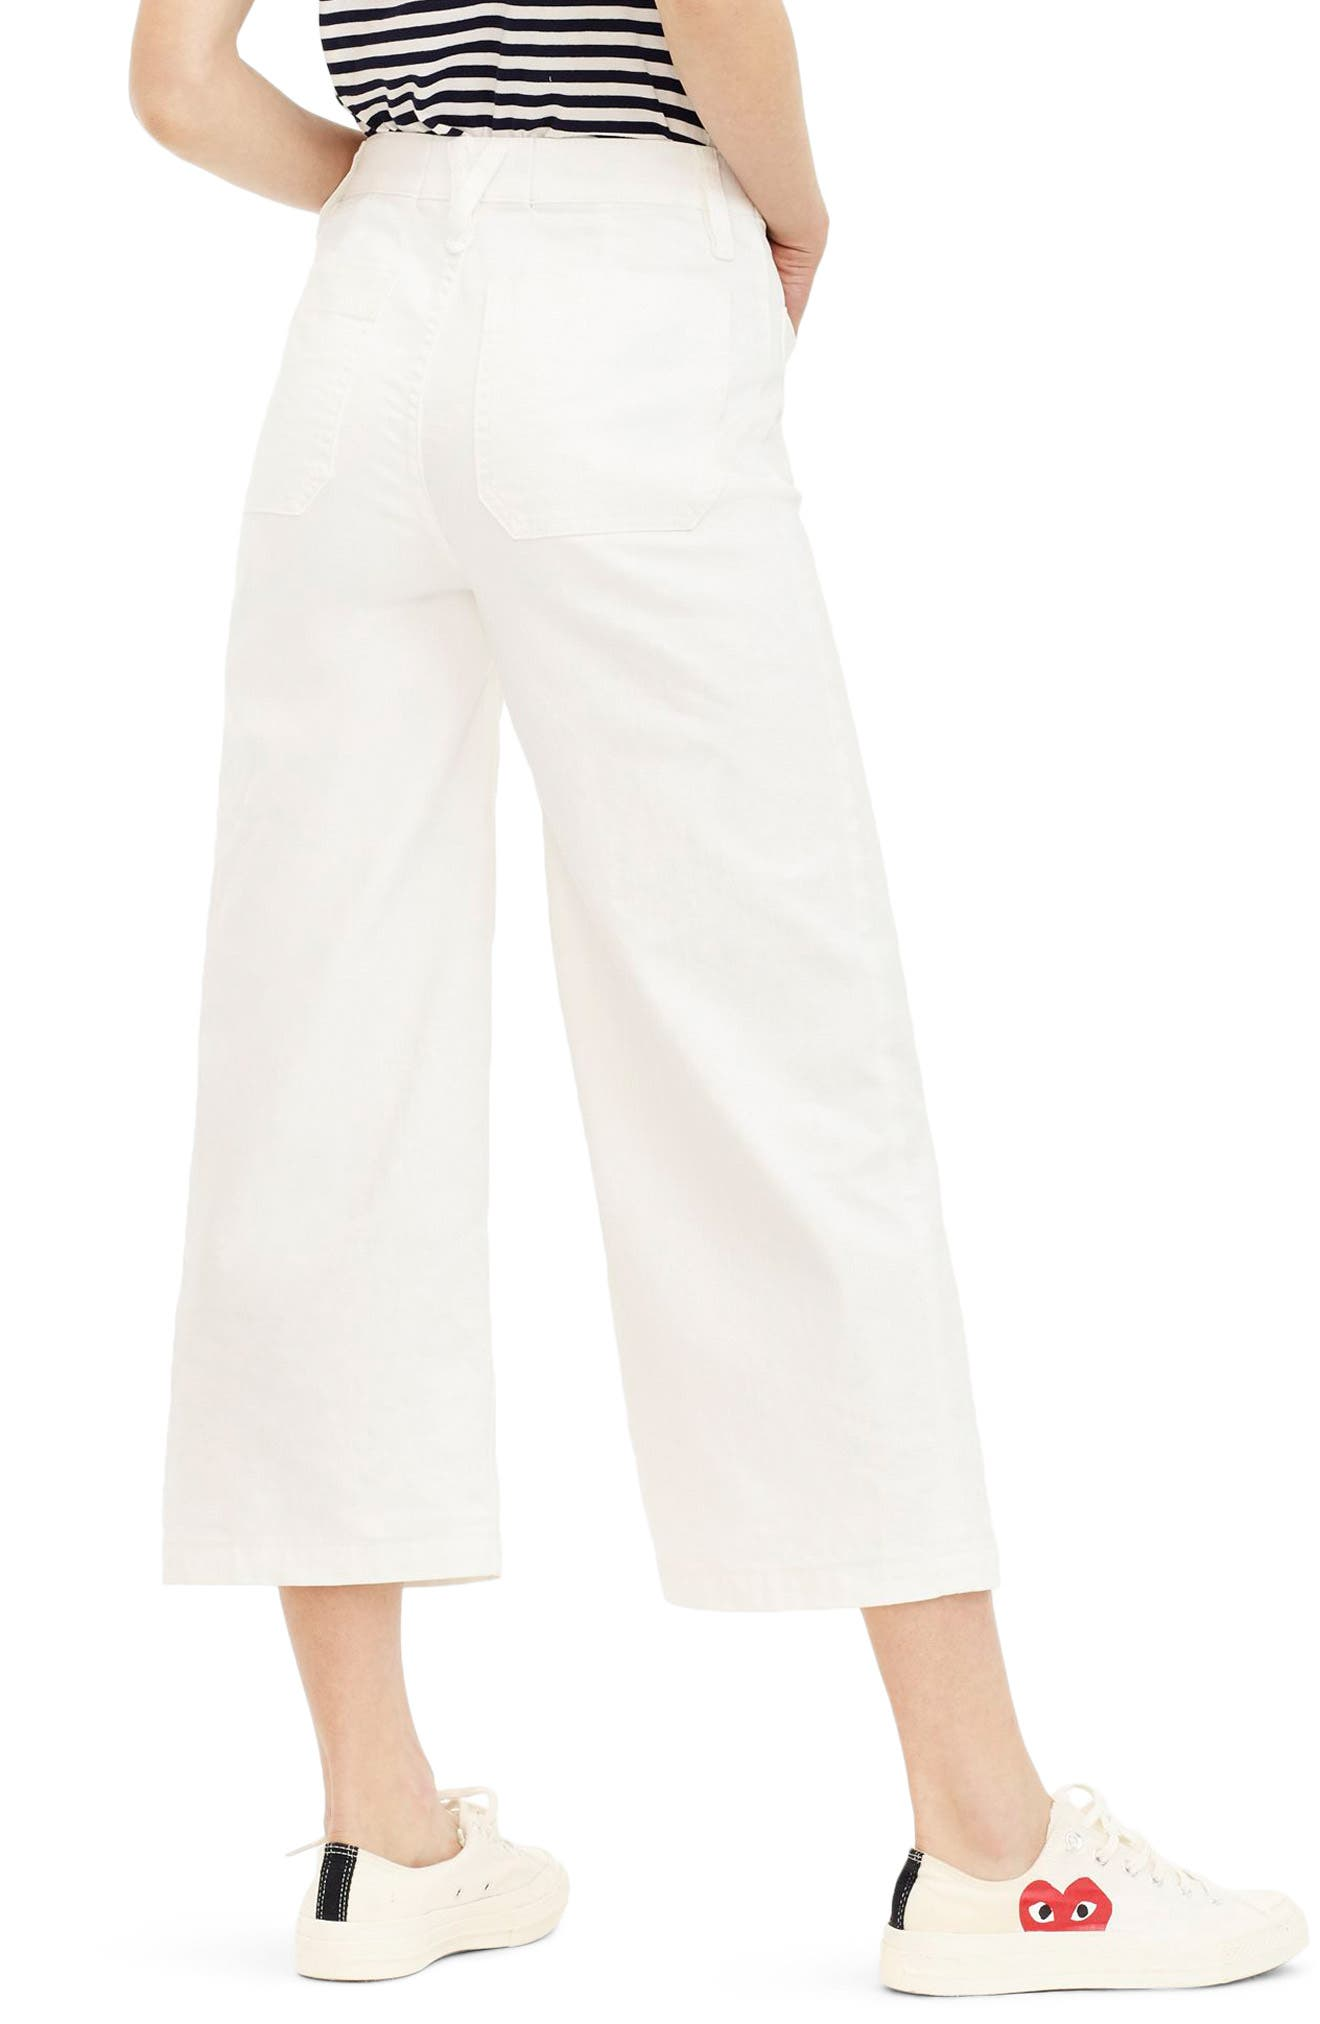 Point Sur Wide Leg Crop Jeans,                             Alternate thumbnail 2, color,                             100